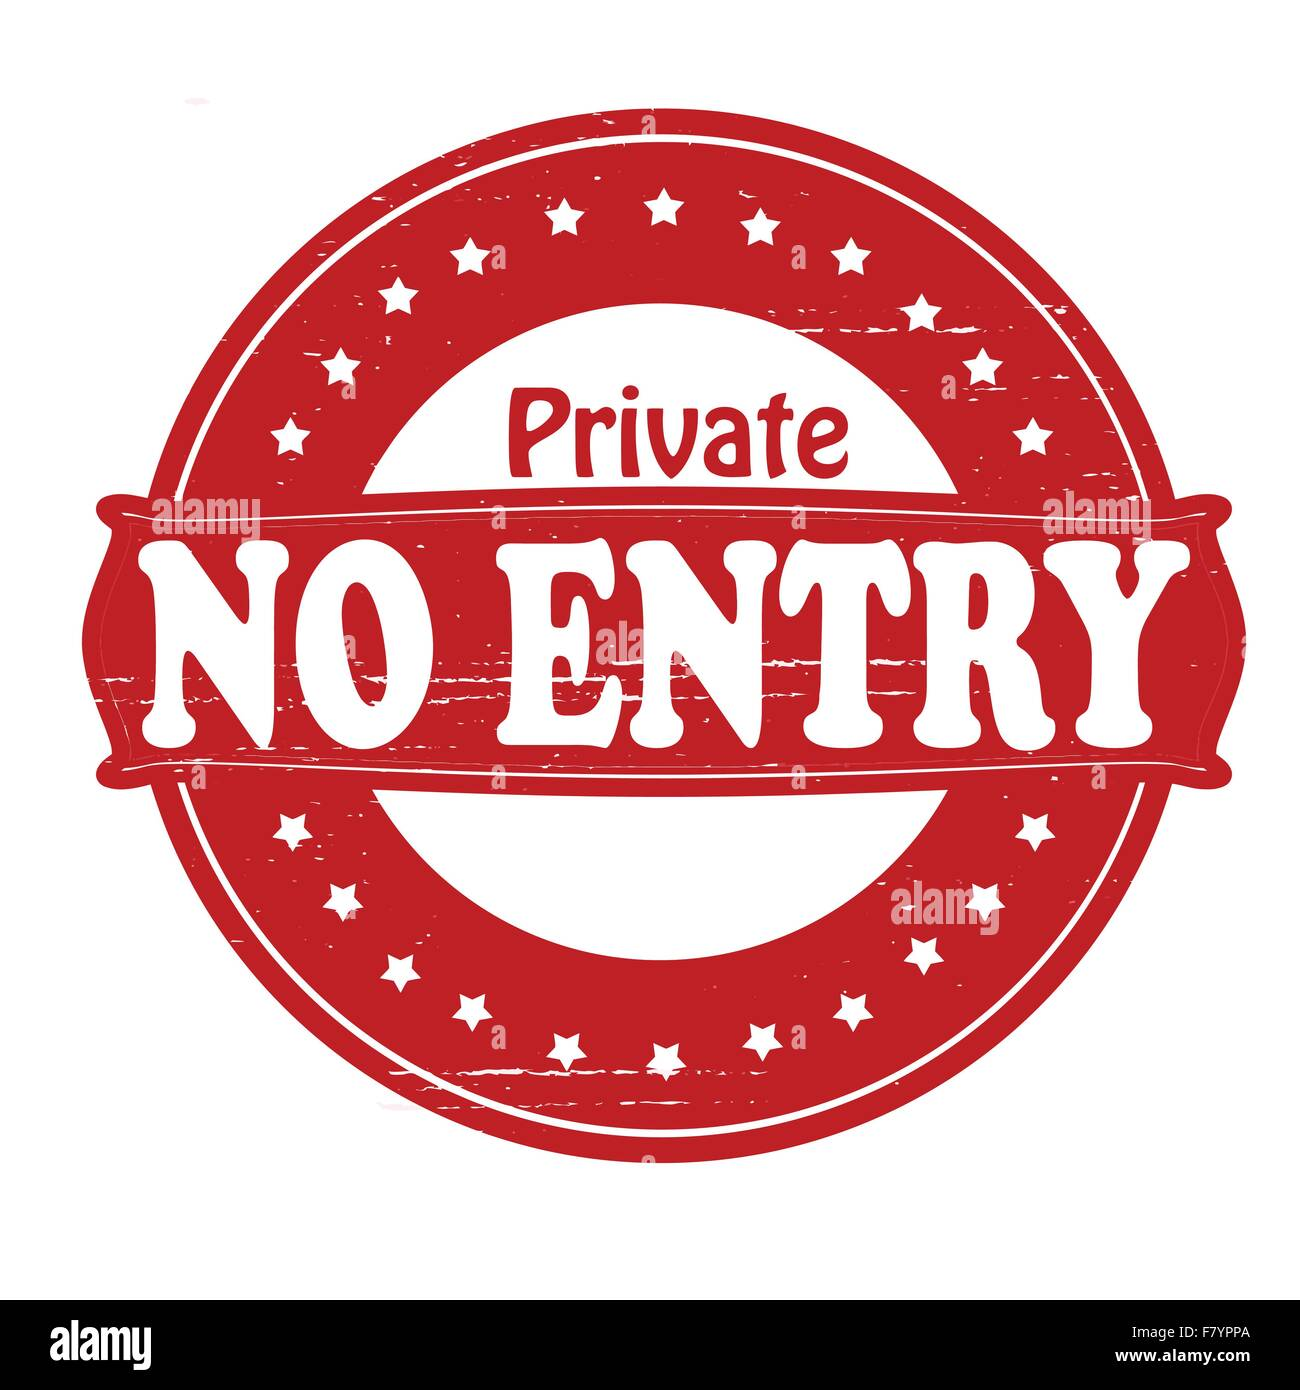 Private no entry - Stock Image